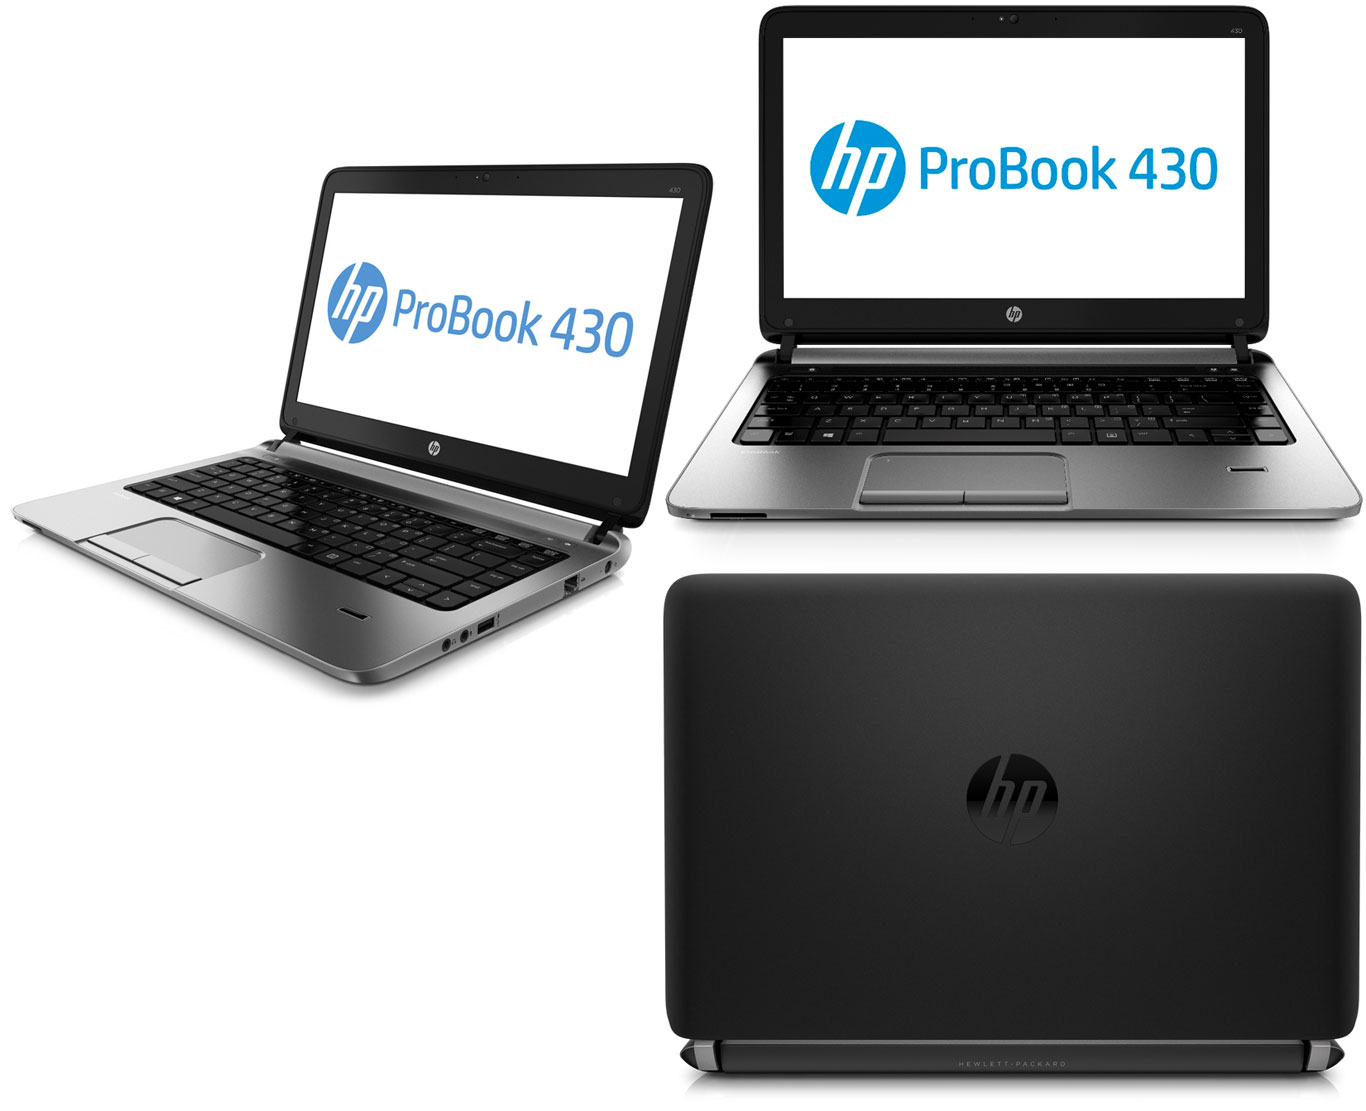 HP HP ProBook 430 G2 Notebook PC (J9J26PA)